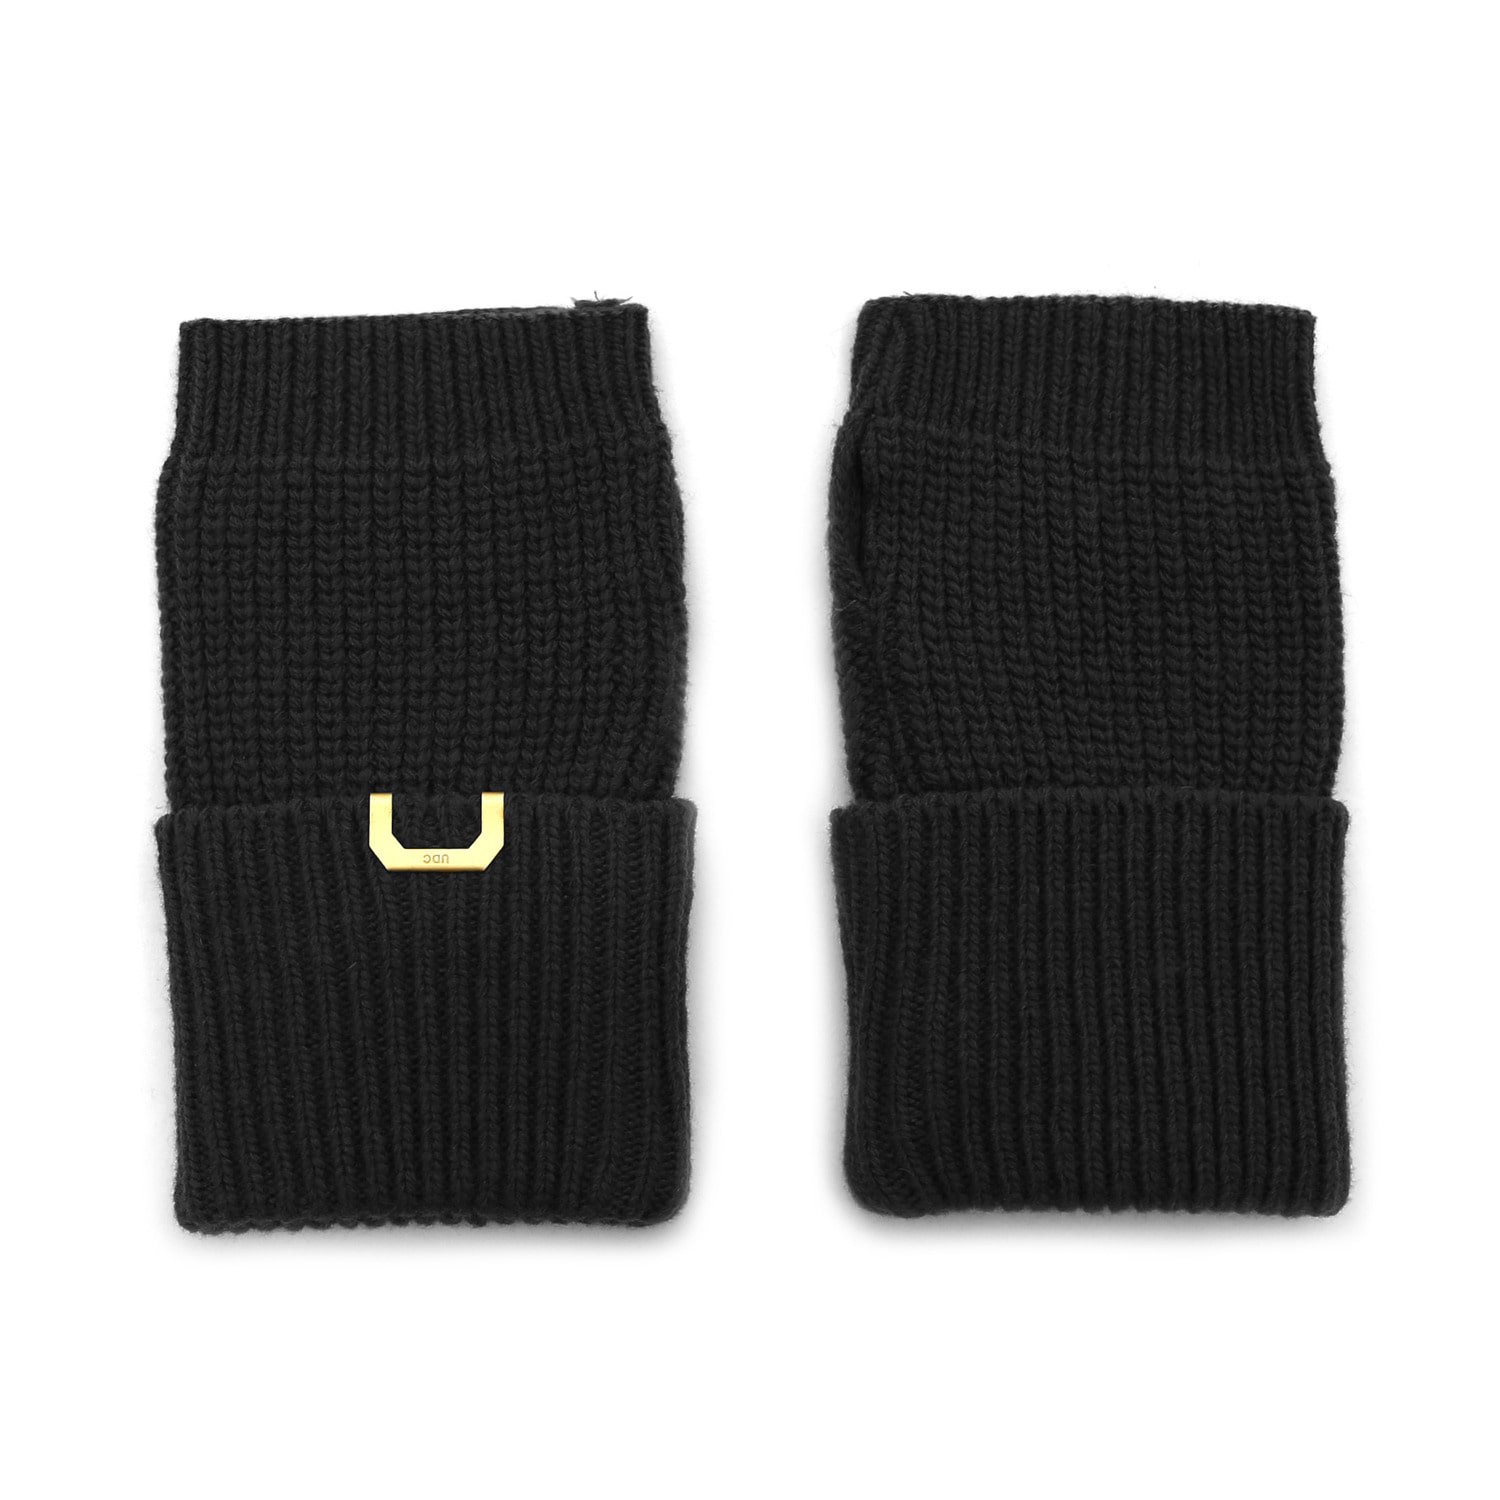 SLEEVE WARMER / LAMBS WOOL / BLACK